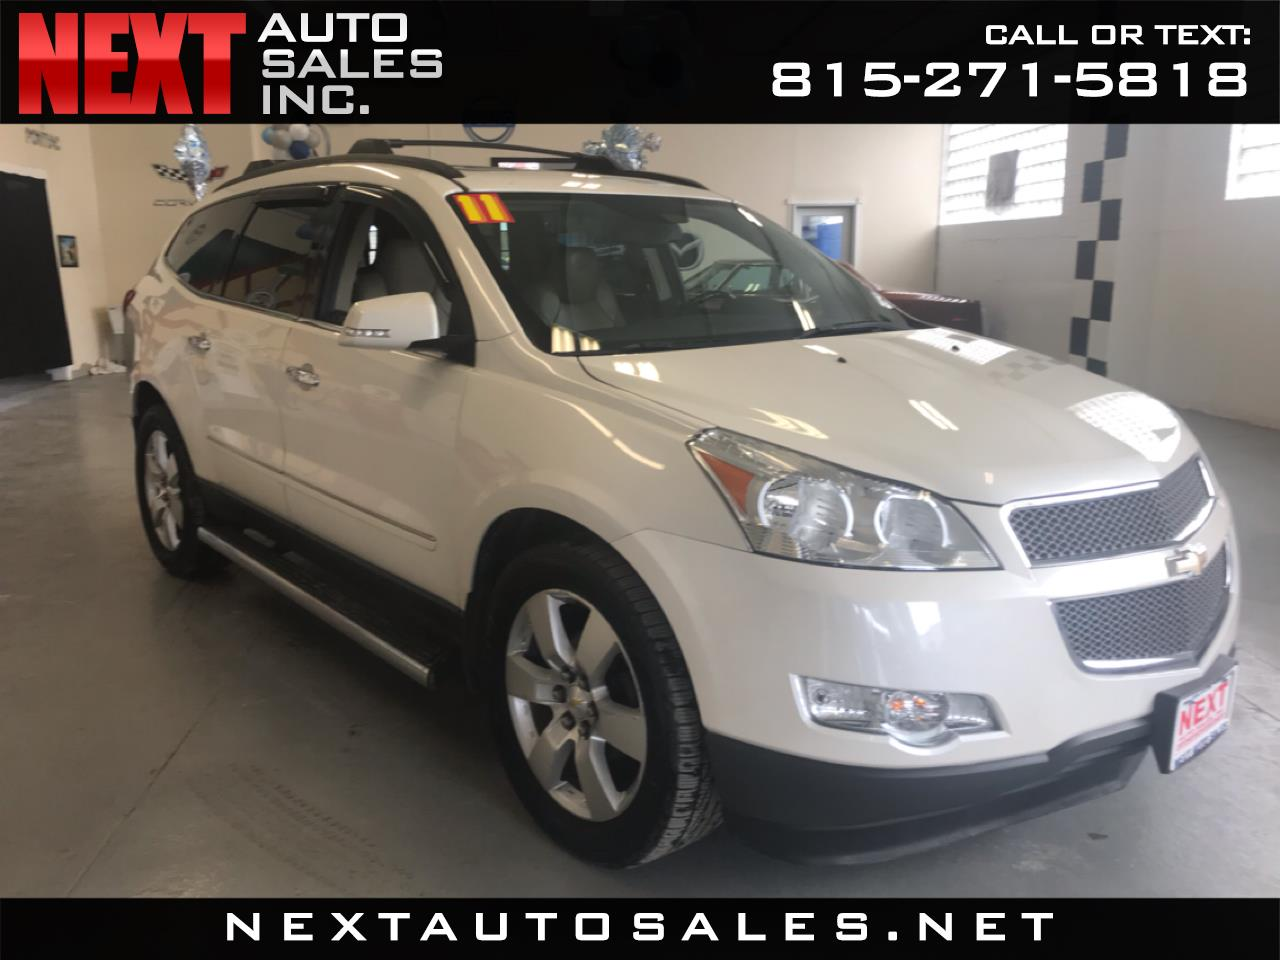 2011 Chevrolet Traverse AWD 4dr LTZ